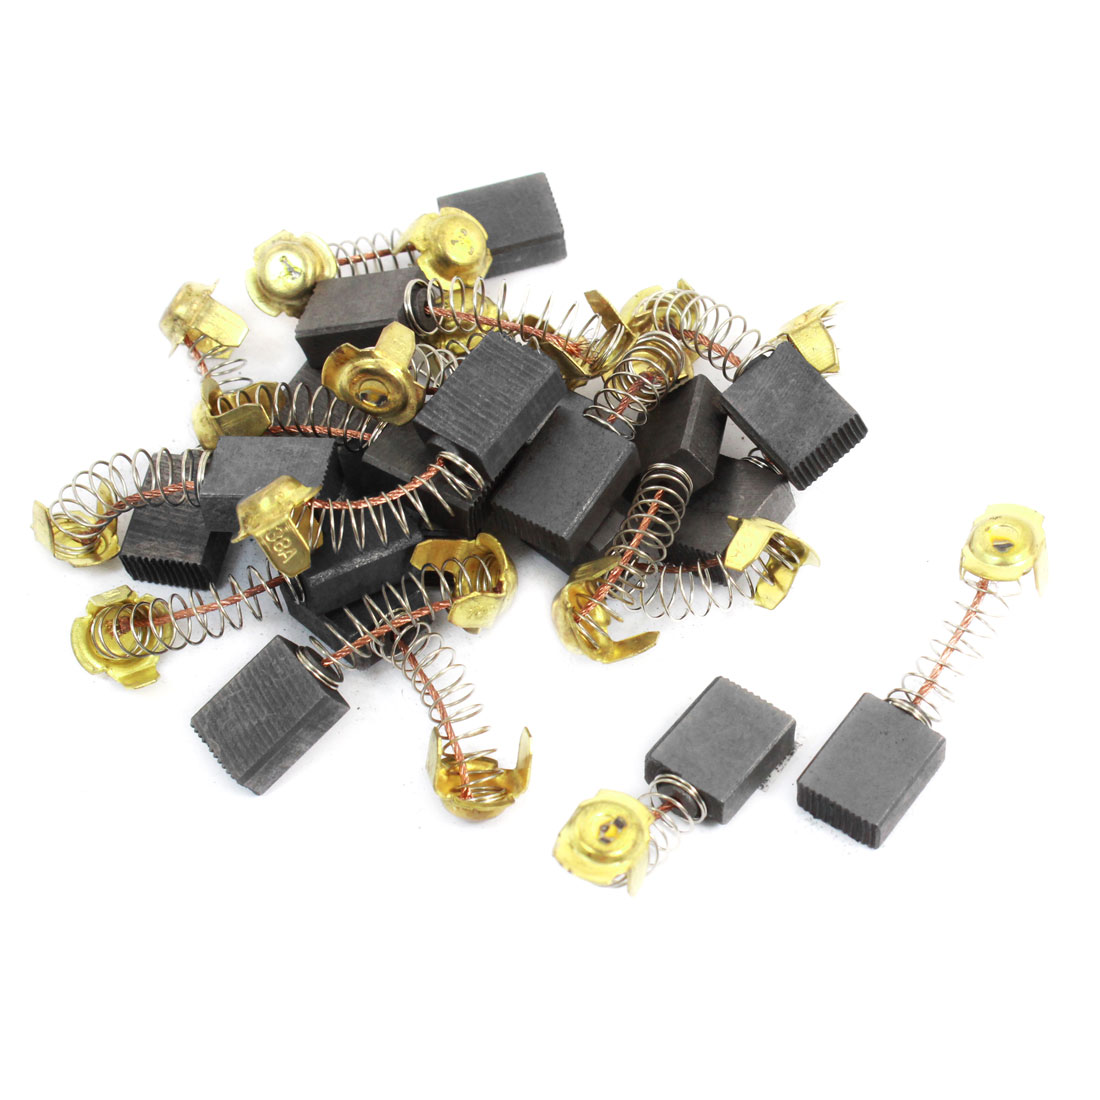 20 Pcs 16mm x 13mm x 7mm Carbon Brushes Black for Electric Drill Motor